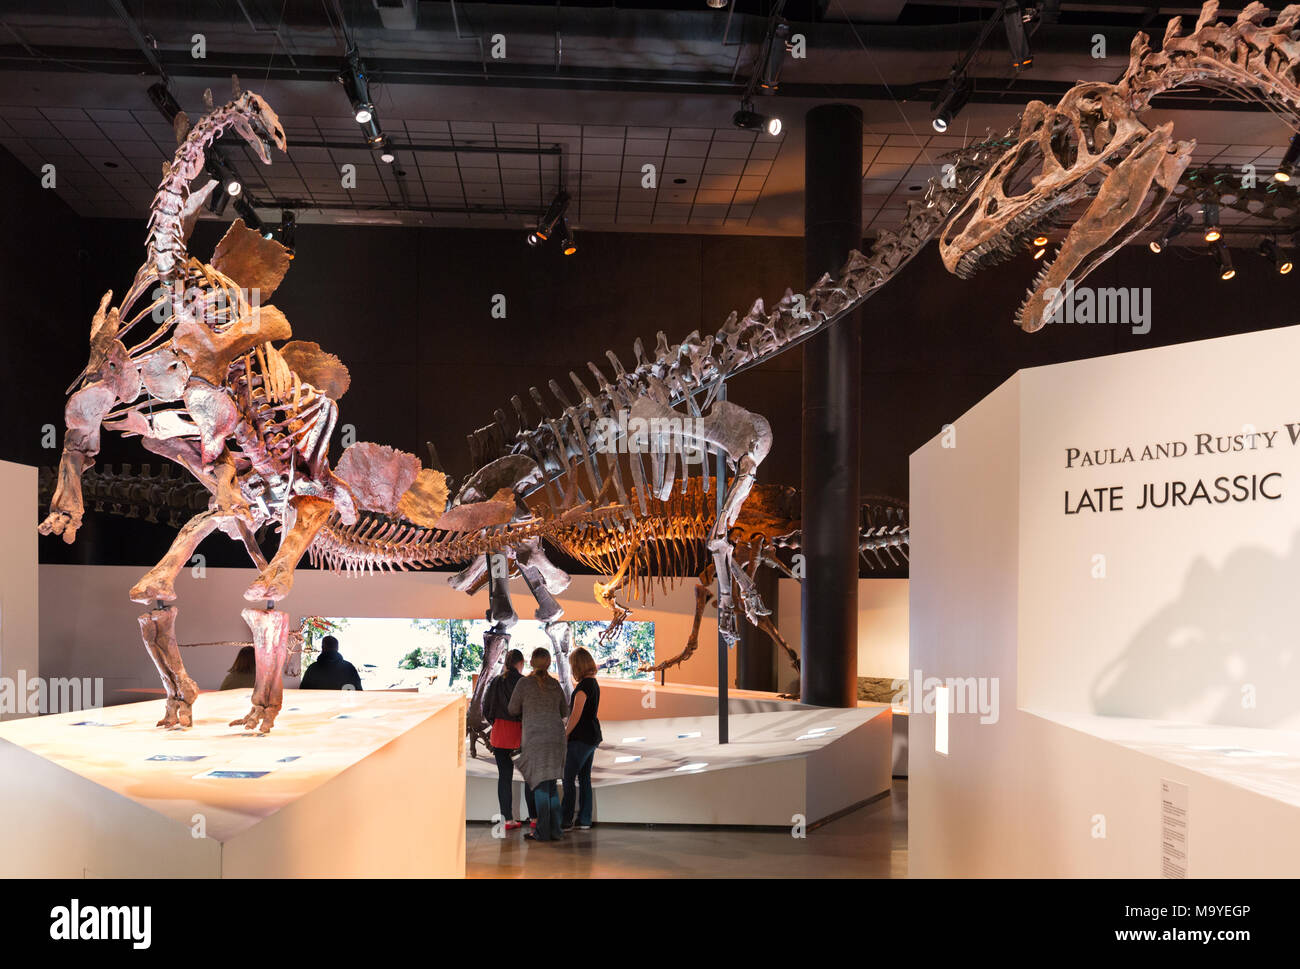 People looking at dinosaurs, dinosaur skeletons and dinosaur fossils in Houston Museum of Natural Science, Houston, Texas USA - Stock Image